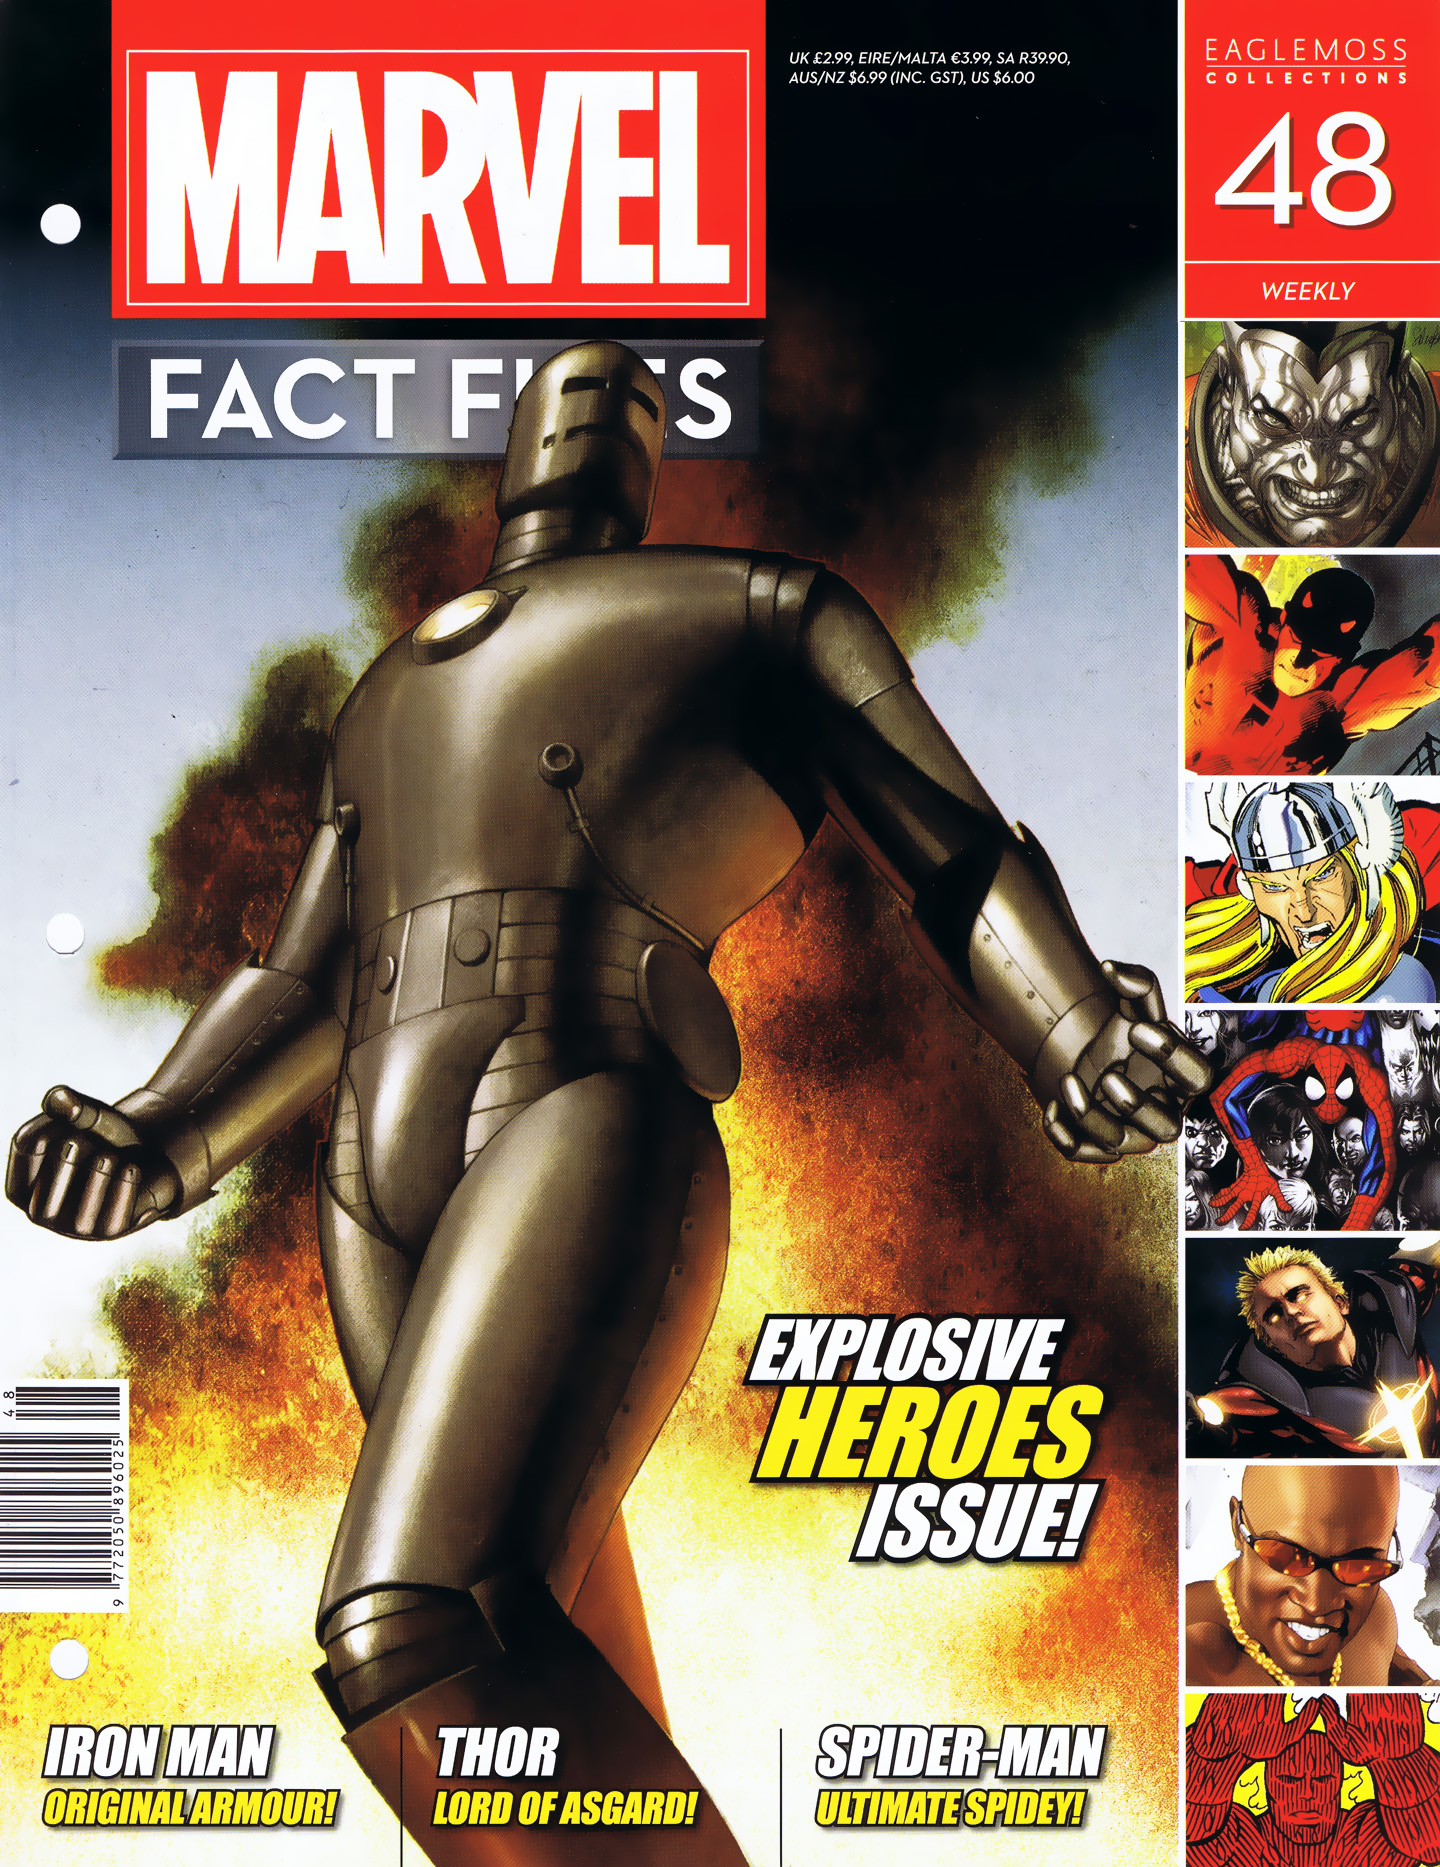 Marvel Fact Files 48 Page 1